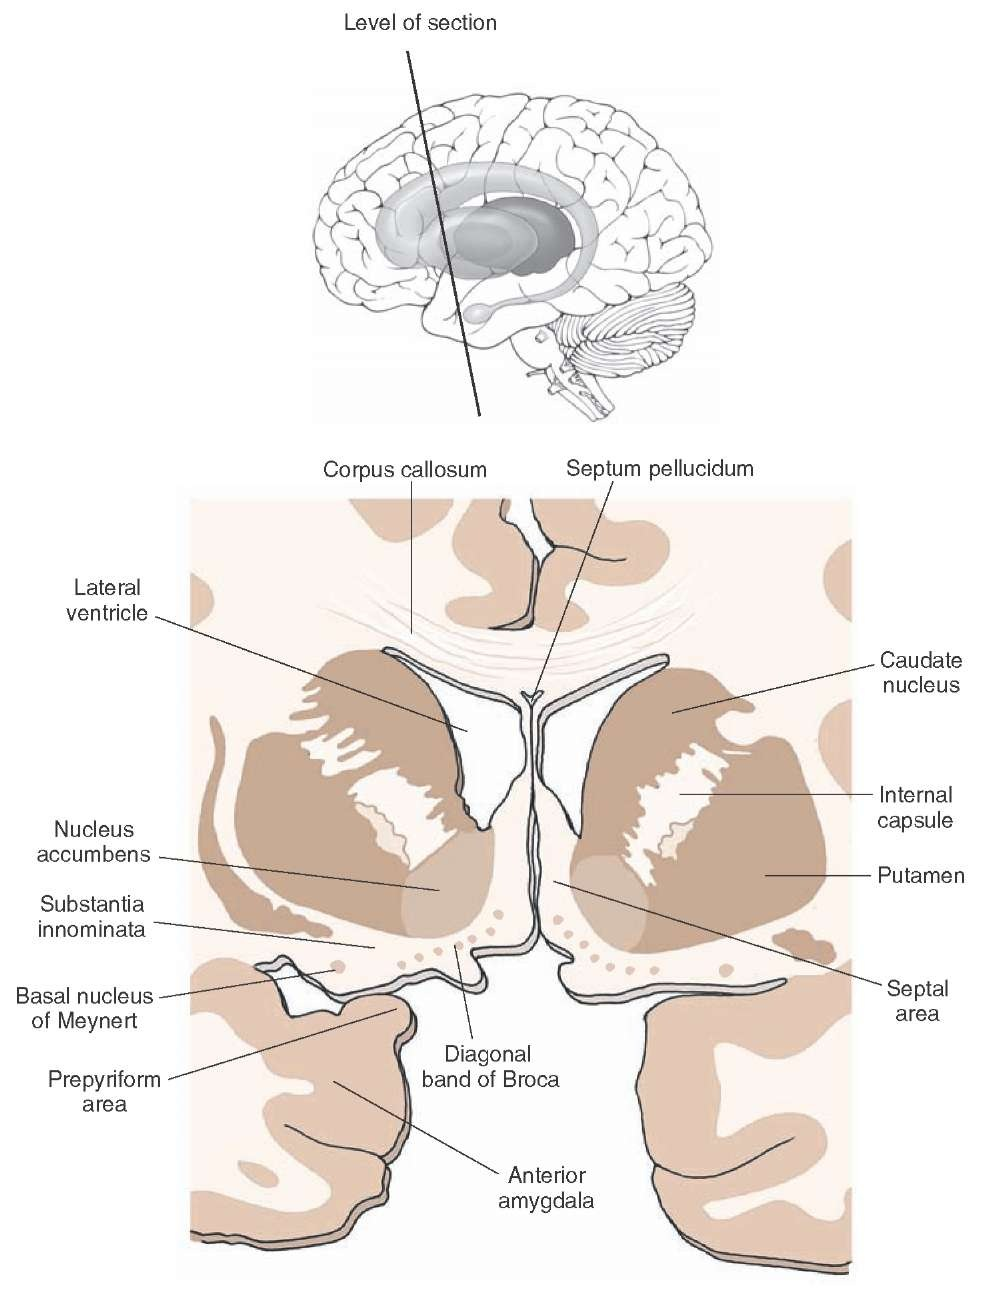 The Forebrain (Organization of the Central Nervous System) Part 3